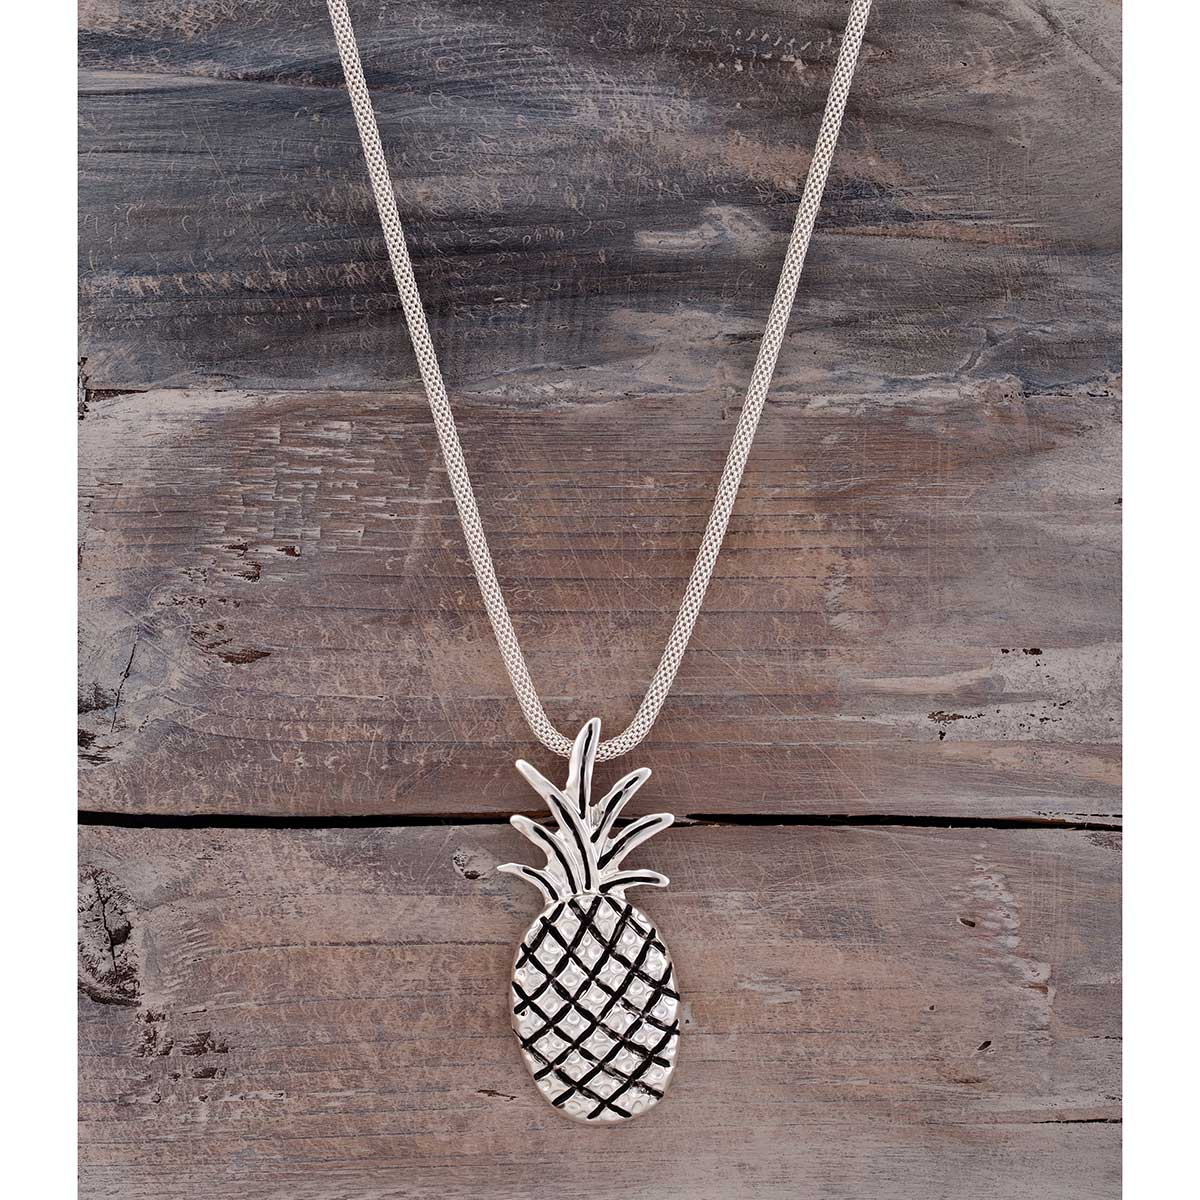 "Satin Silver 1""x2.75"" Pineapple on Mesh Chain Necklace 16""-19"""